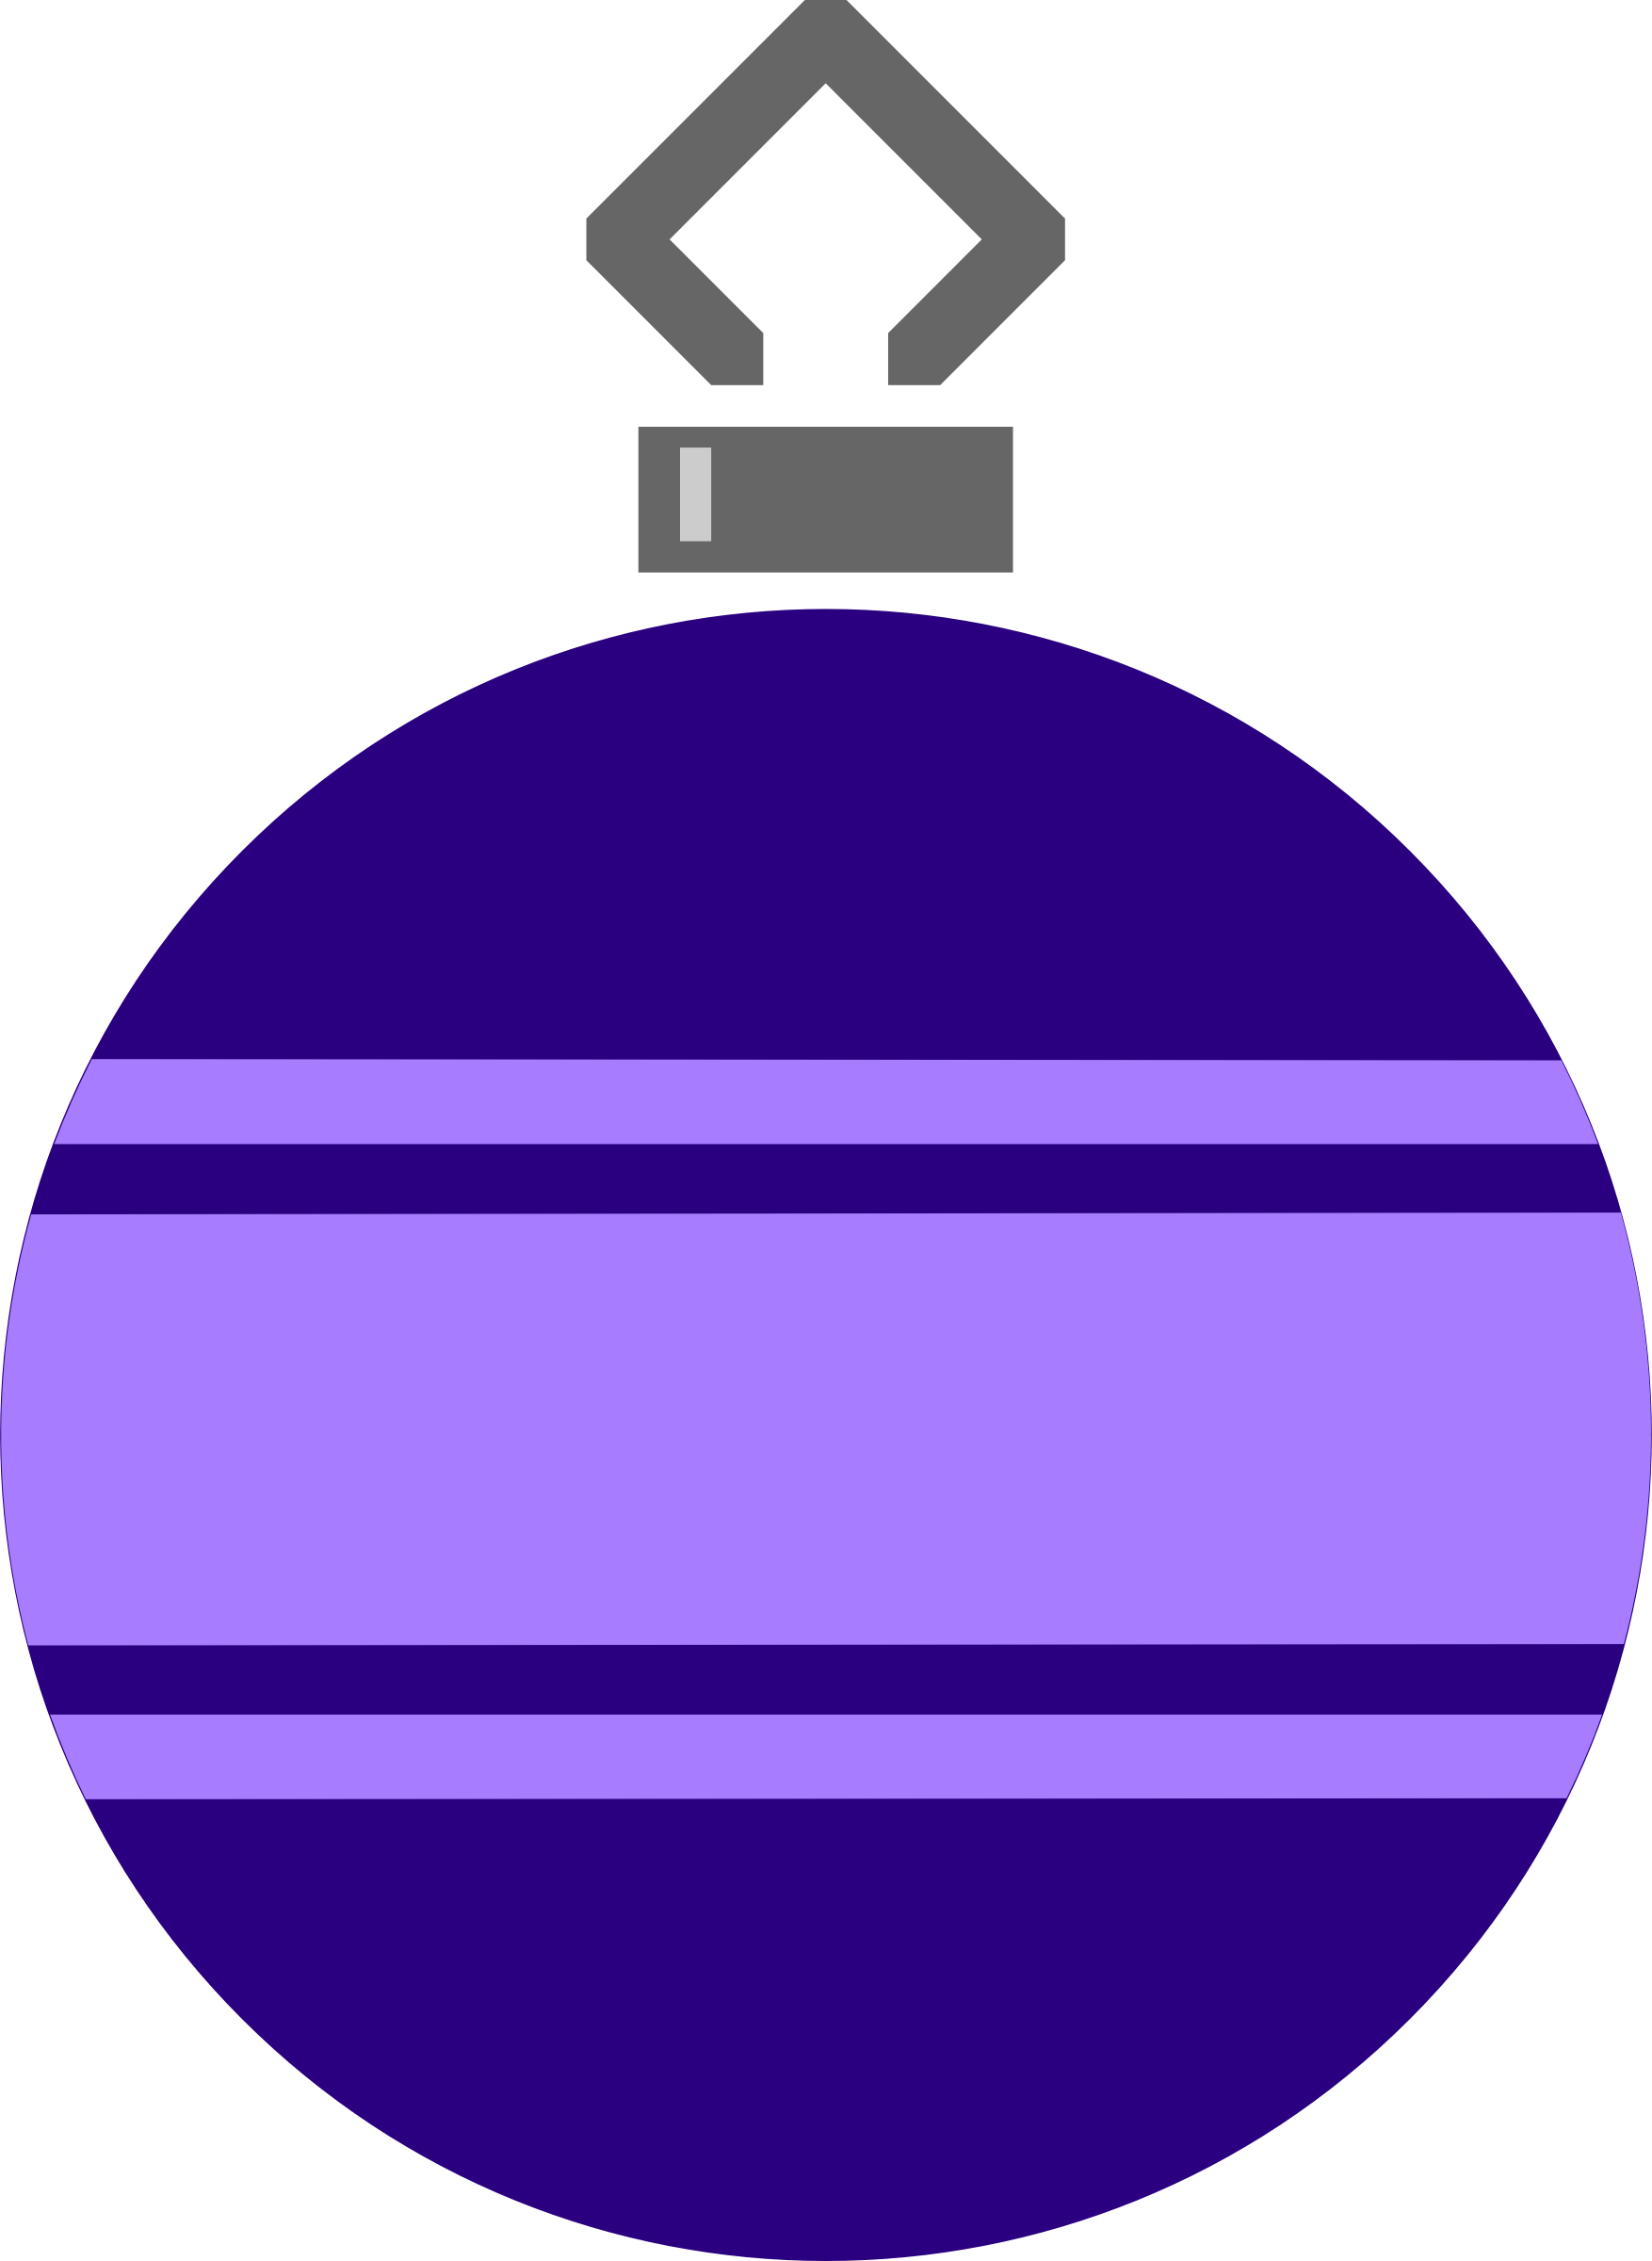 Simple tree bauble 9 (colour) by Firkin